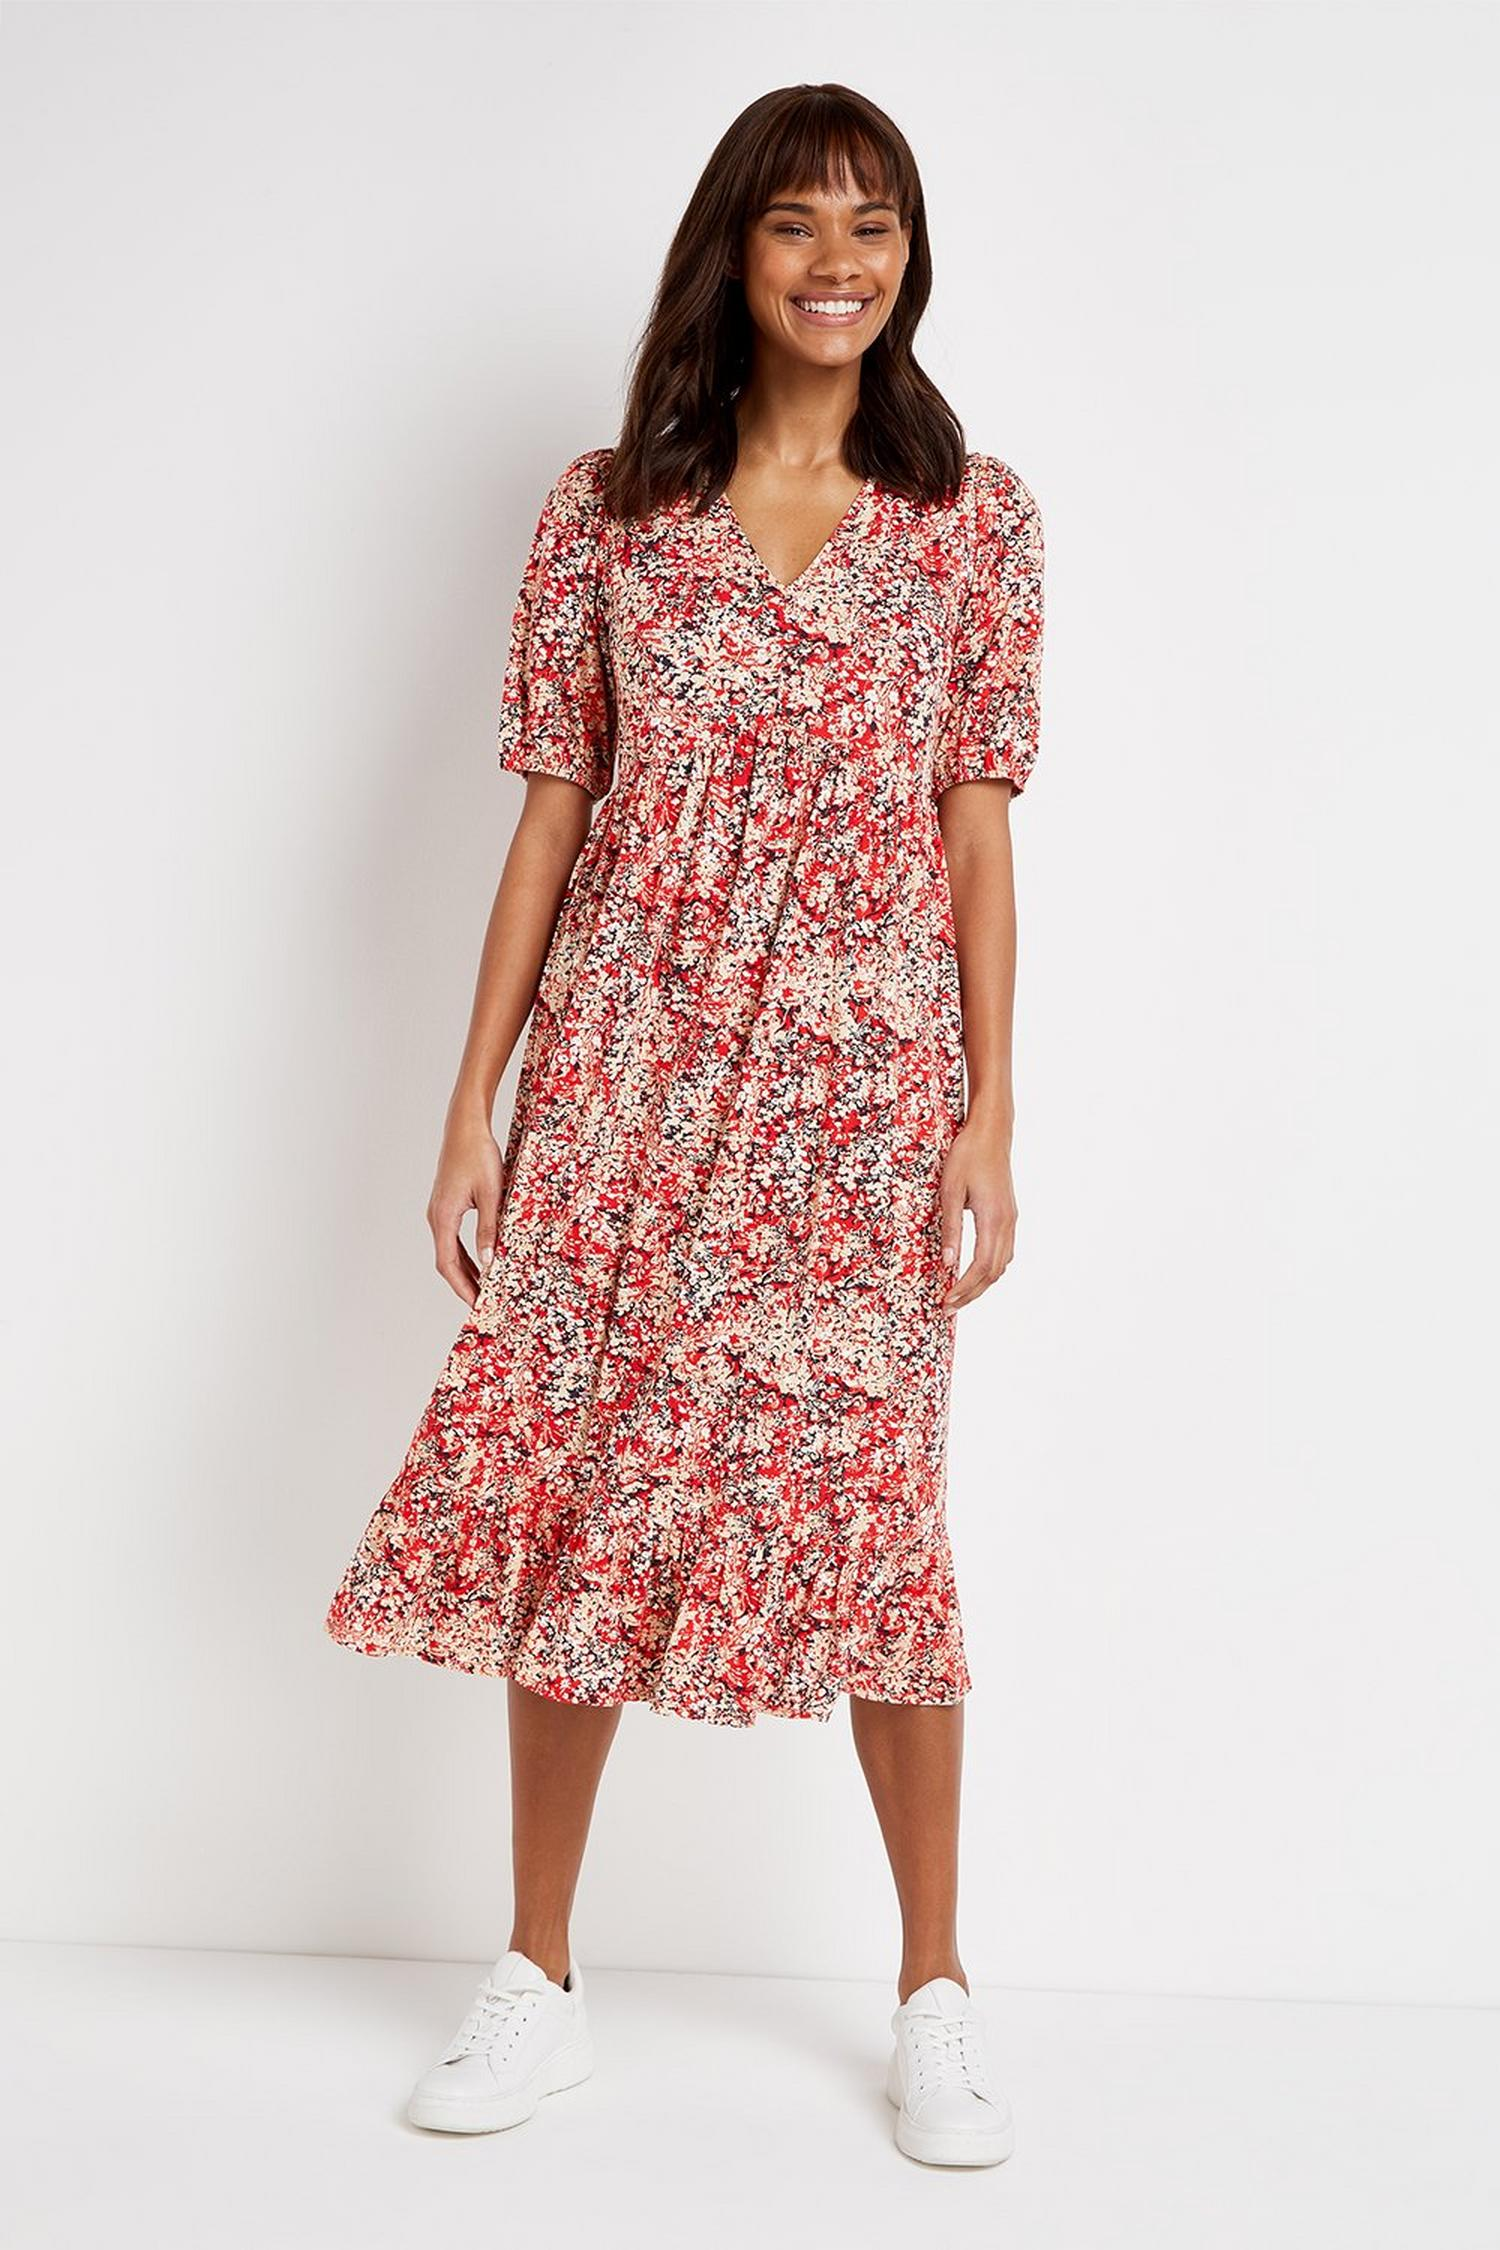 157 TALL Red Floral Print Midi Dress image number 1